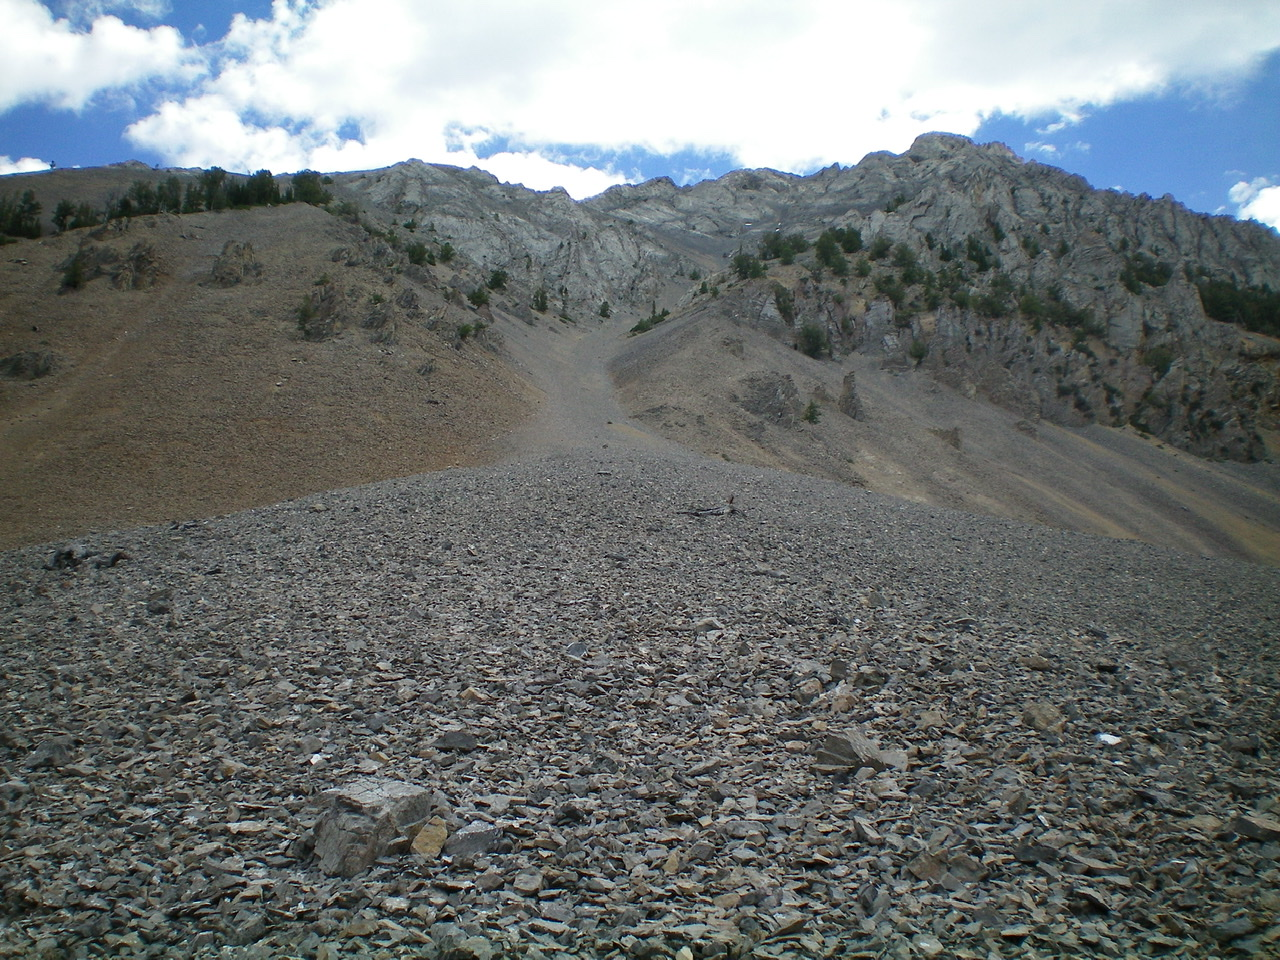 The West Gully of Umpleby Peak, as viewed from its base. This gully goes directly to the summit, albeit with a few bends along the way. Livingston Douglas Photo